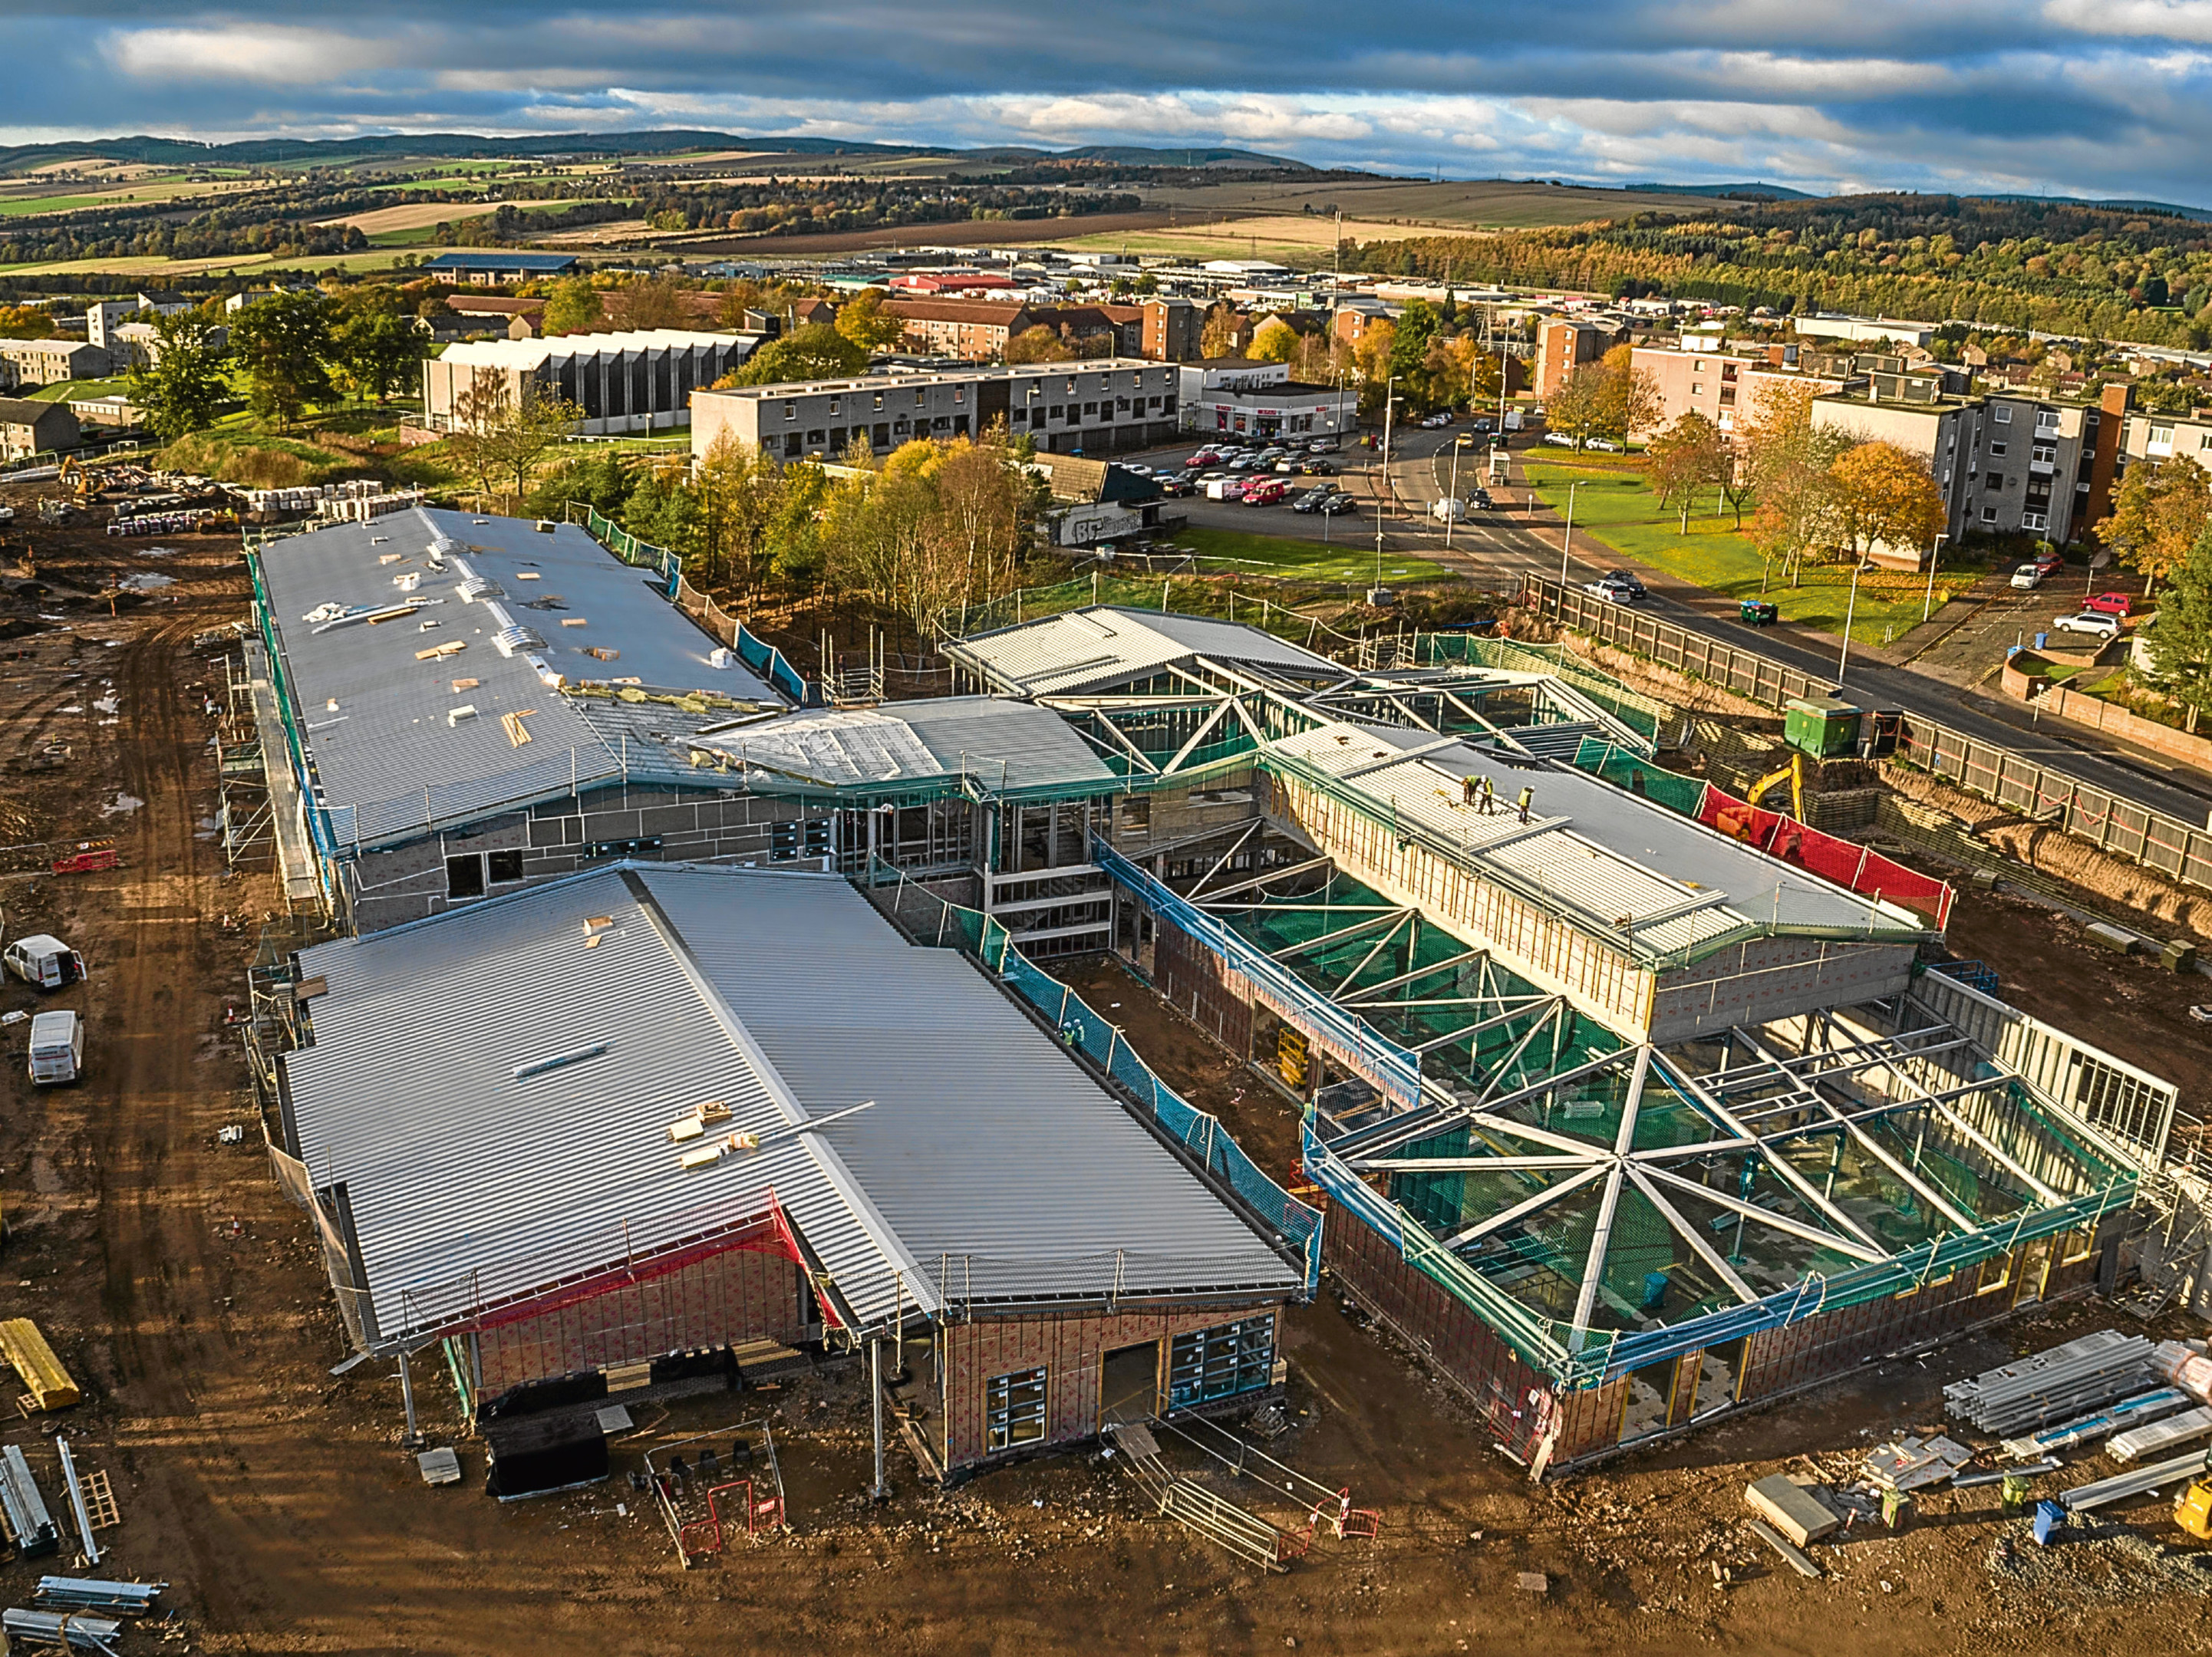 This image of the construction of the new Tayview Primary in Menzieshill was taken by Broadwing Media.